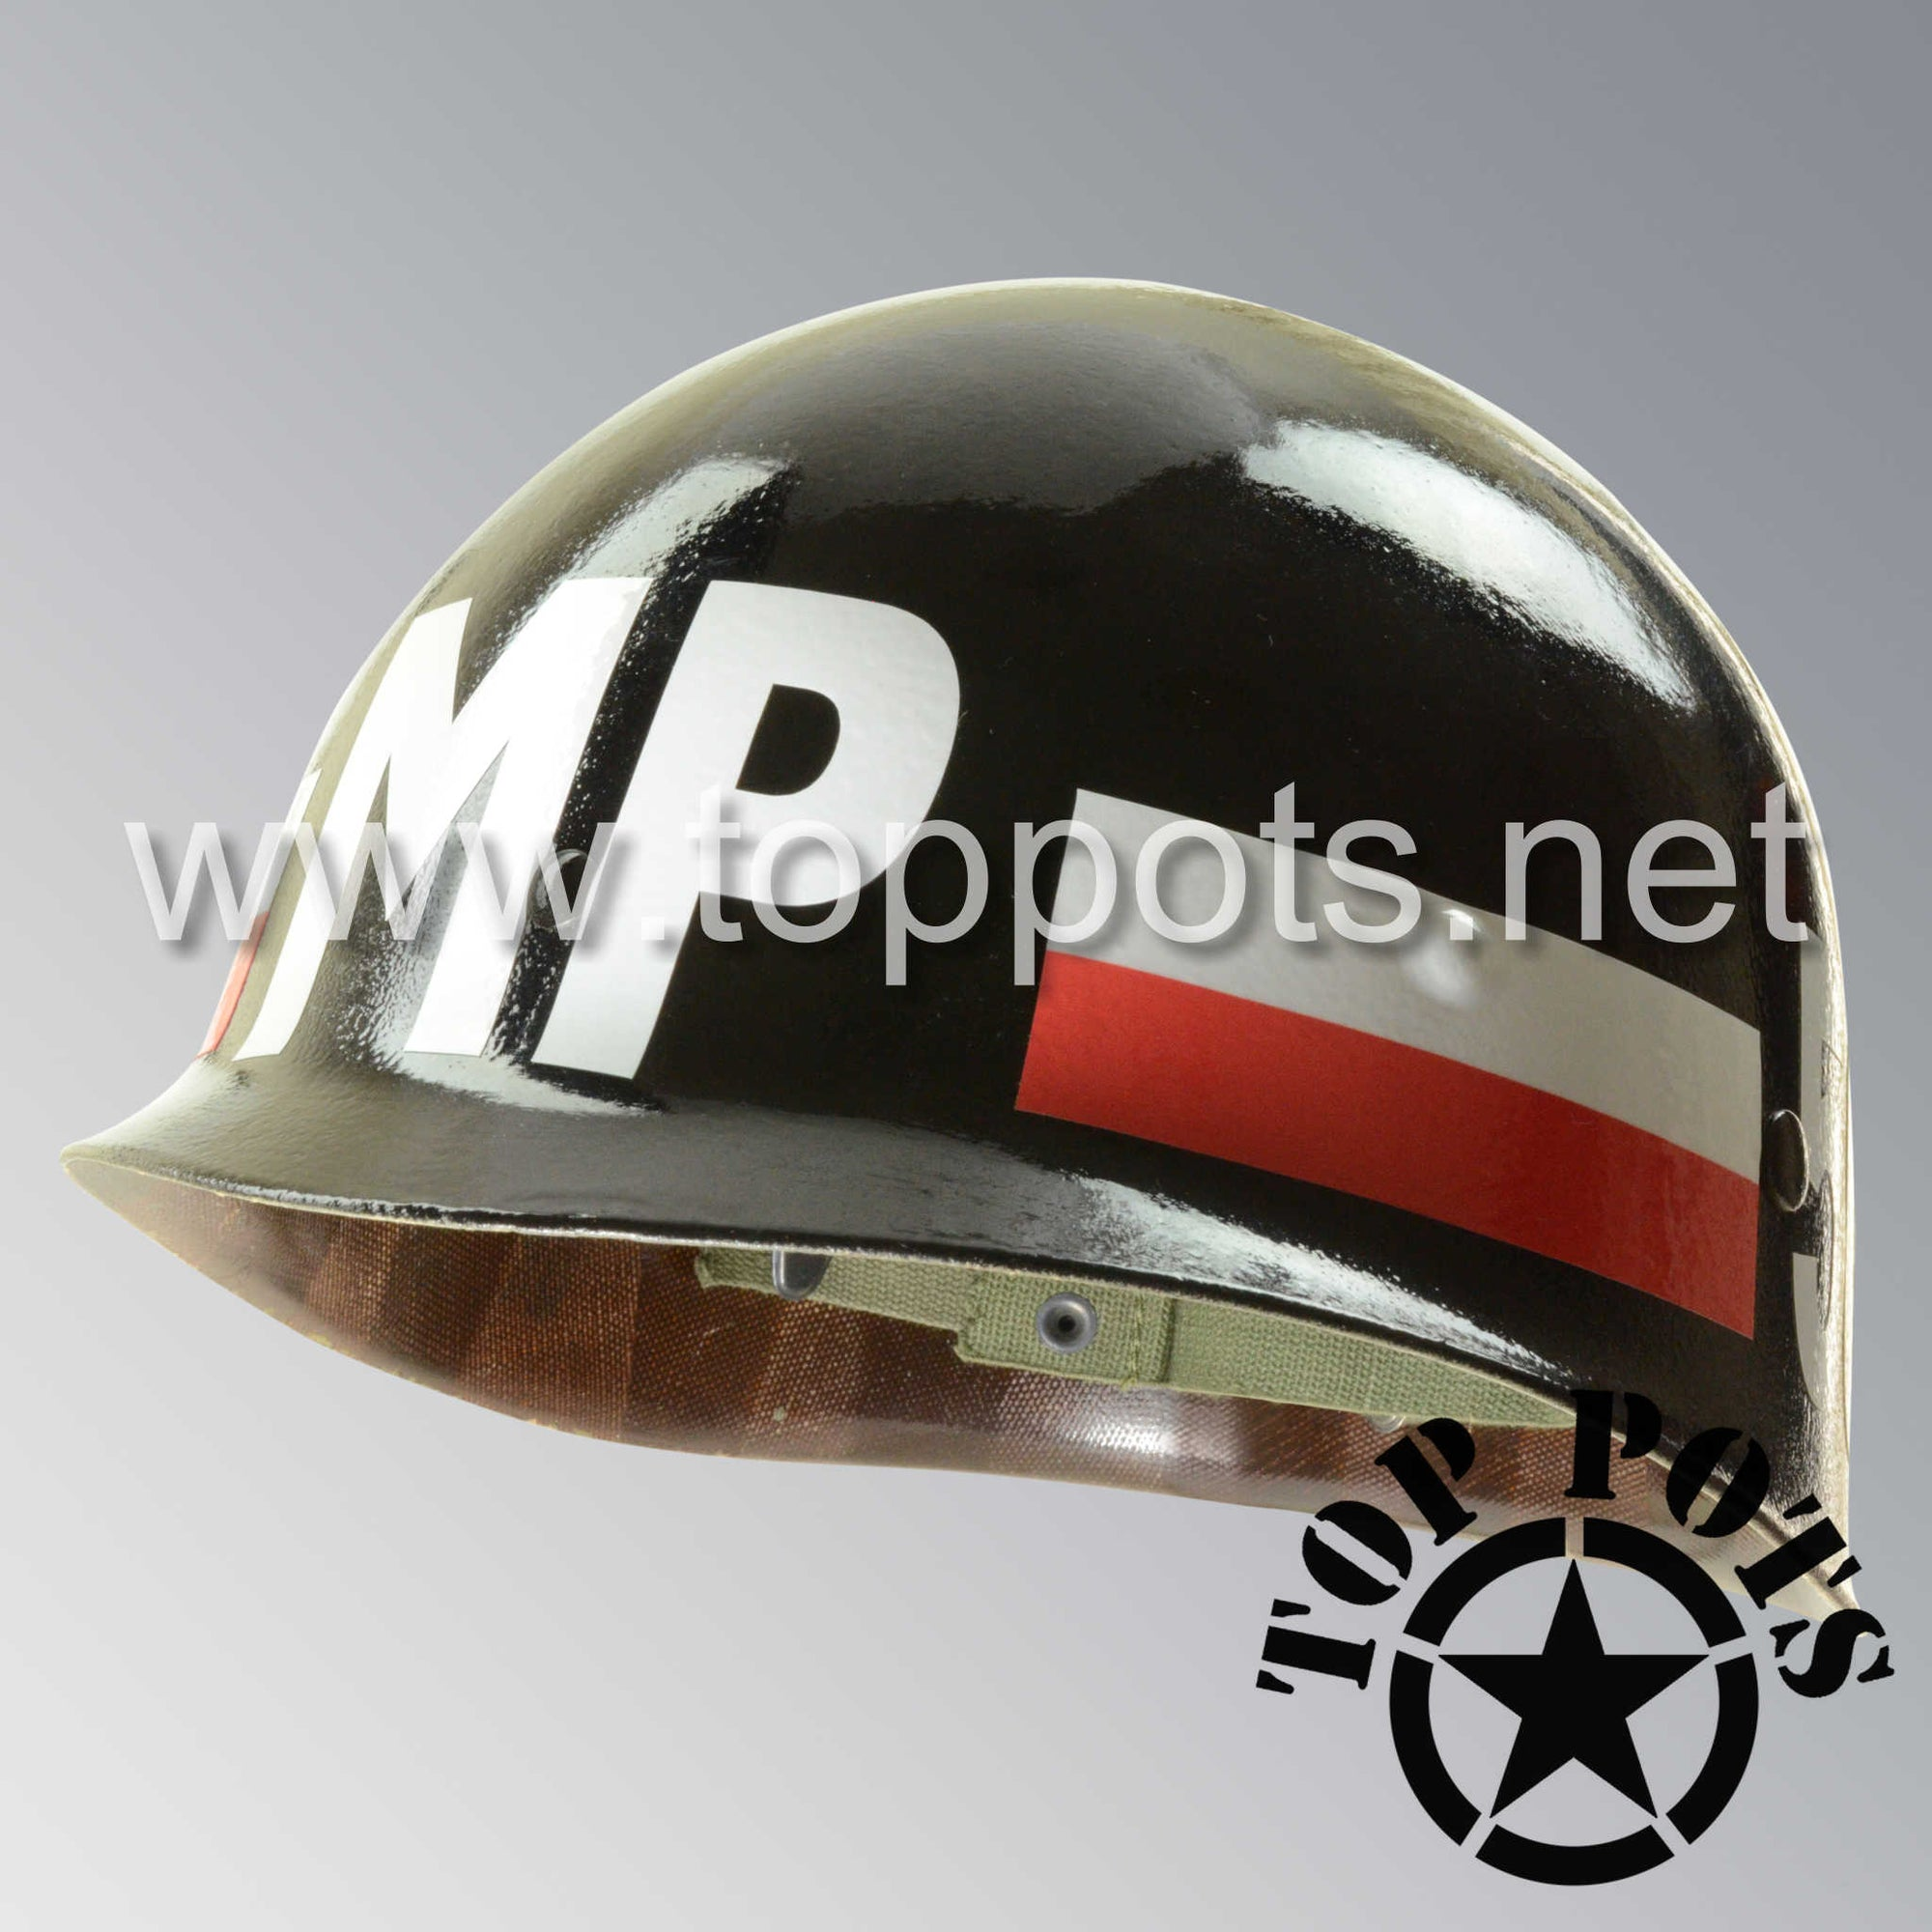 Image 1 of Vietnam War US Army Original M1 Infantry Helmet P55 Liner 503rd MP Battalion 6th Military Police Group 3rd Army Emblem